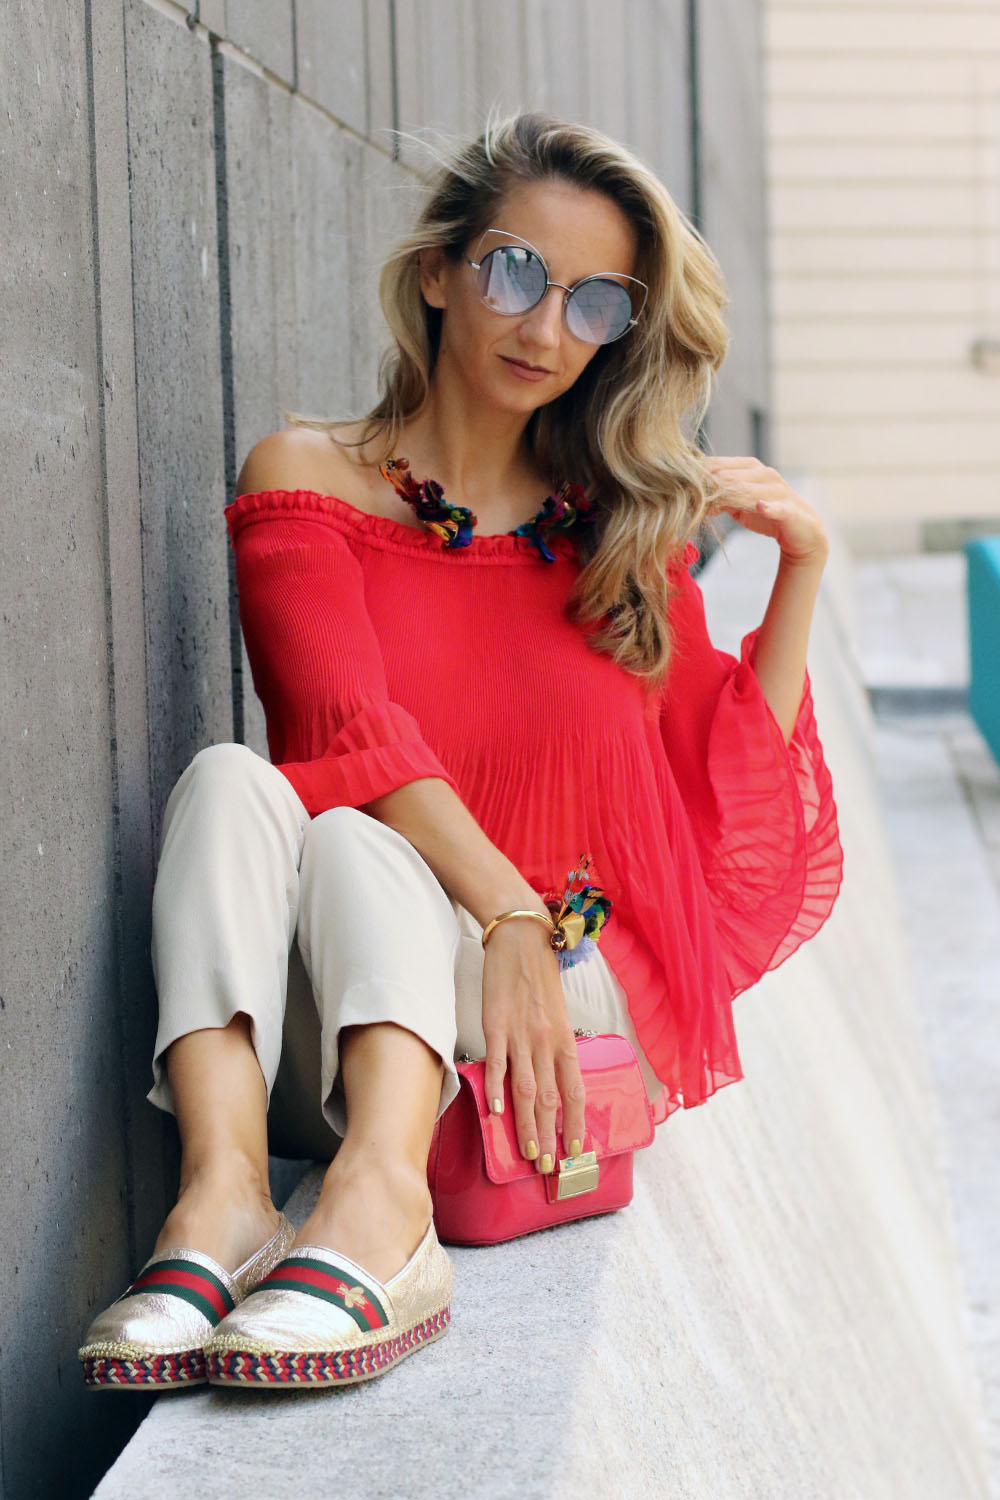 colourclub-modeblog-outfit-off-the-shoulder-top-gucci-shoes-furla-bag-thai-silk-juwelery-ornaments-lor8